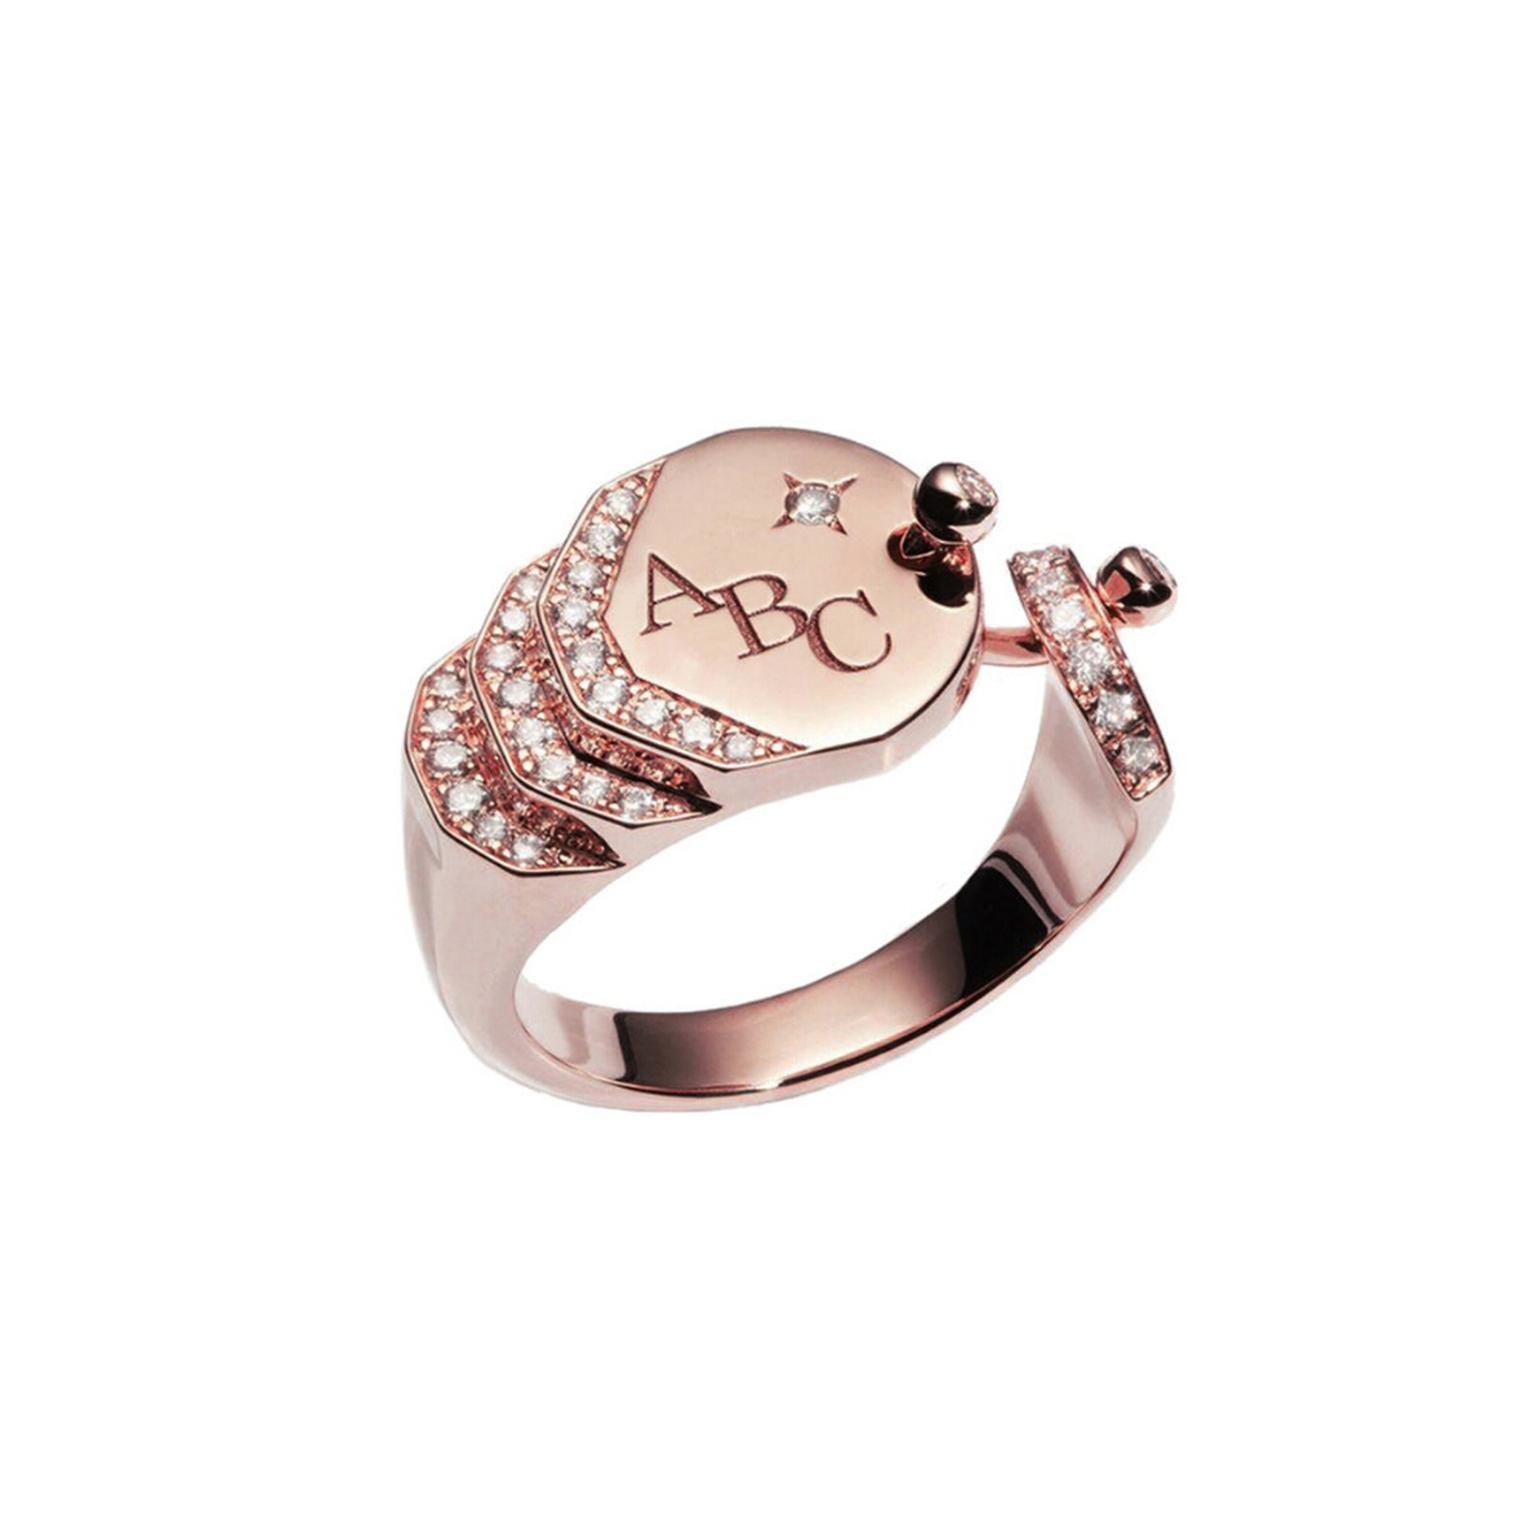 Nouvel Heritage Engraved Sparkles rose gold signet ring